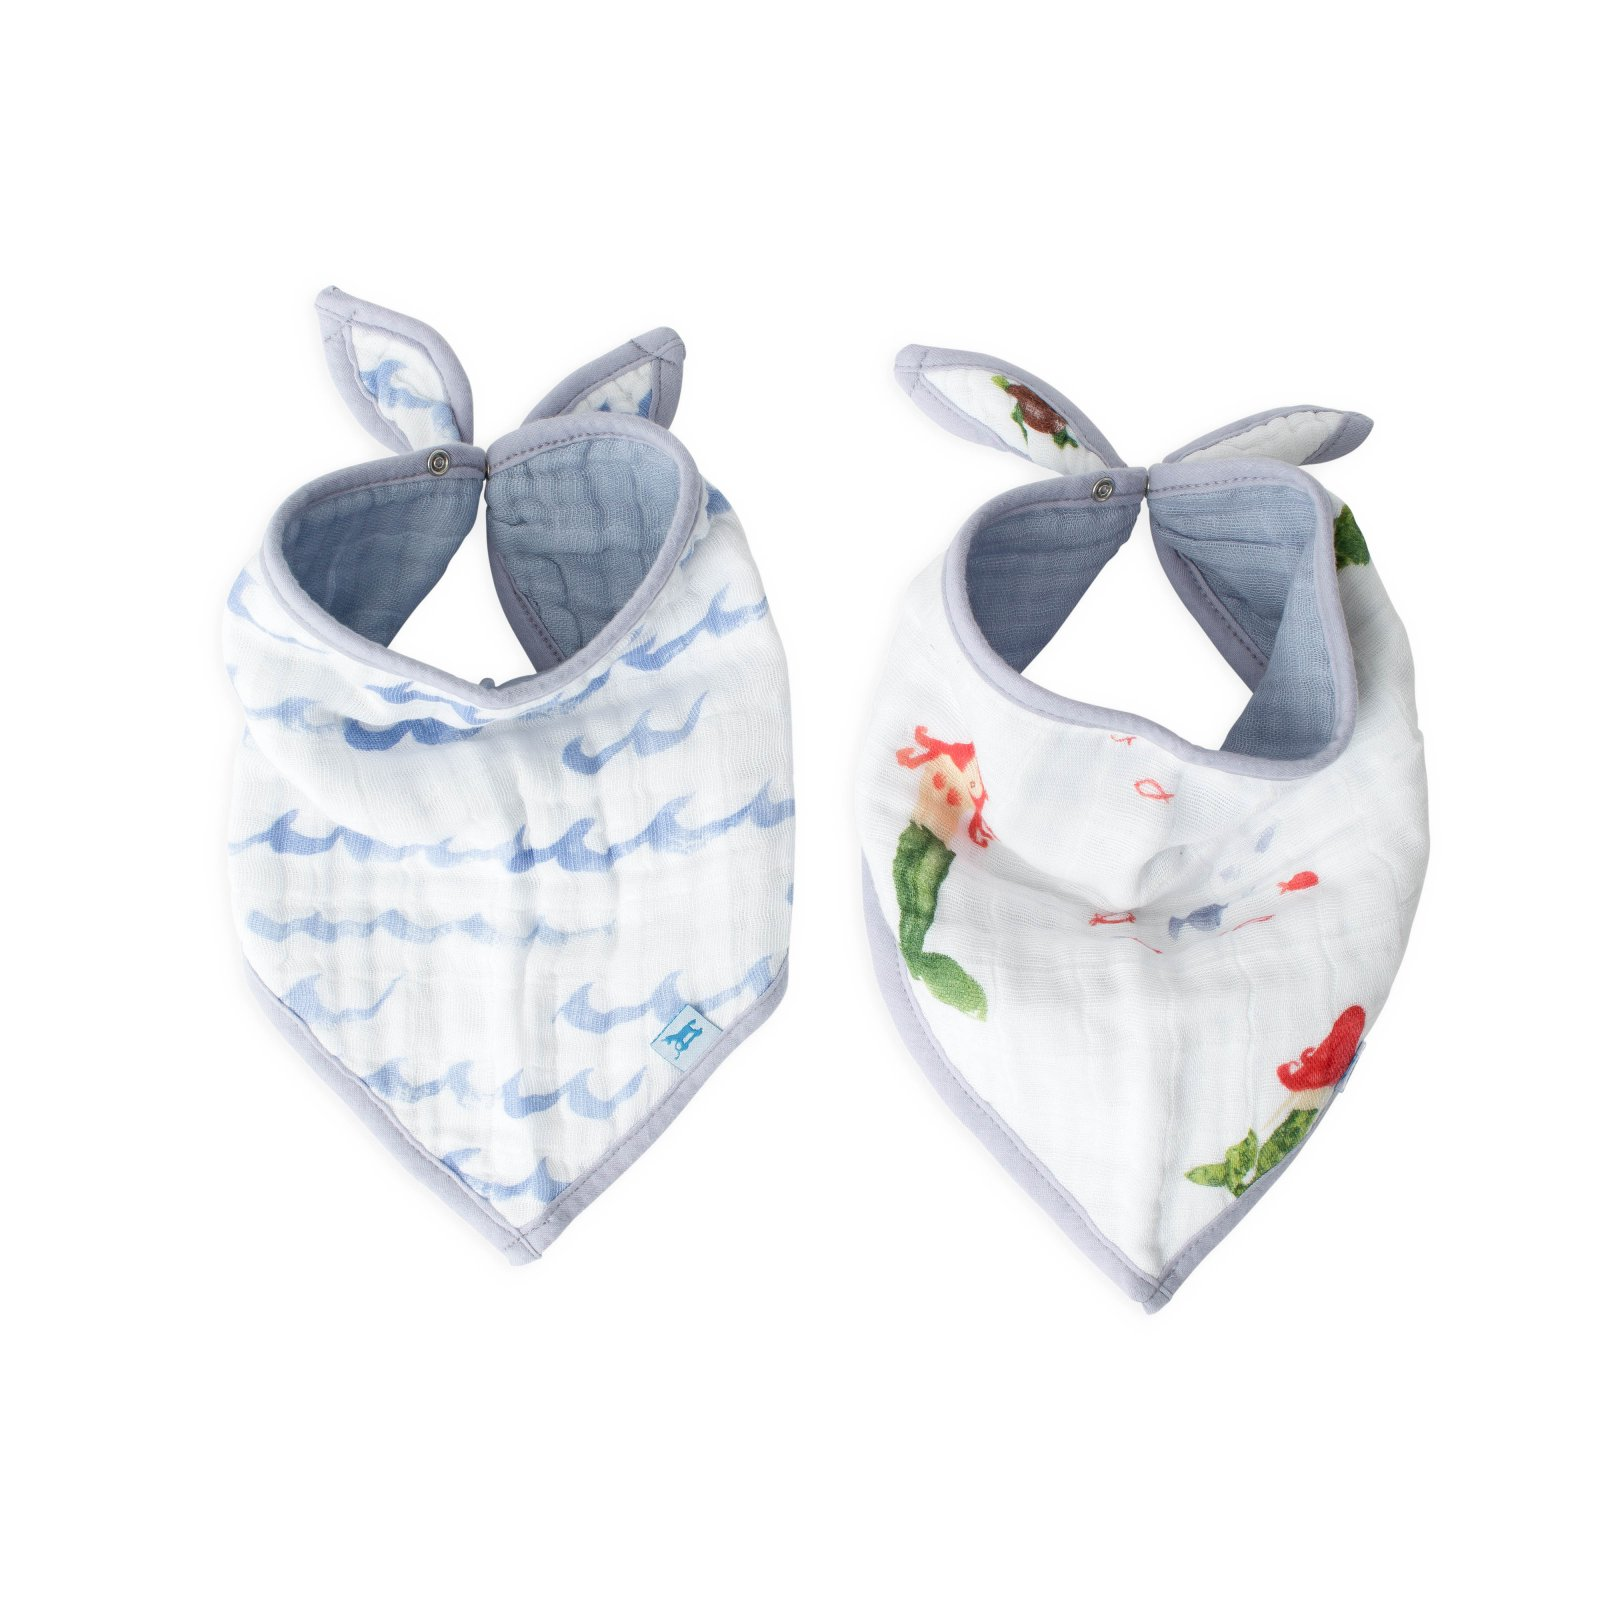 Little Unicorn Cotton Muslin Bandana Bib 2 pack - Mermaid